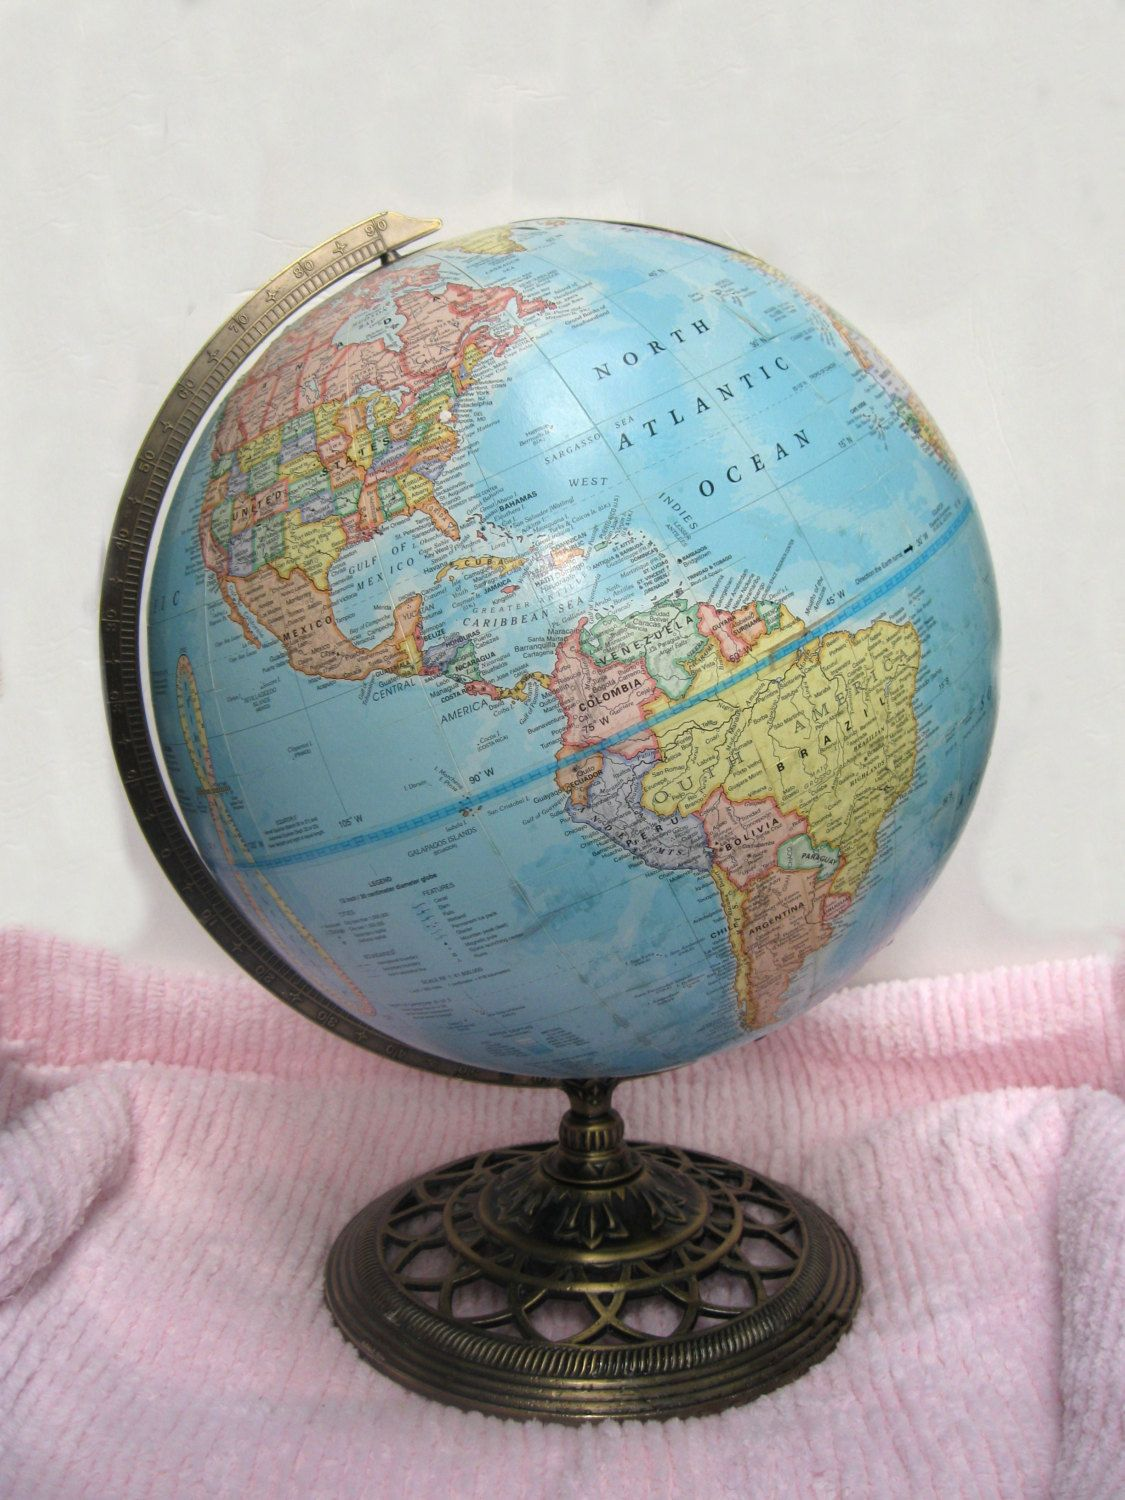 Vintage george f cram world globe blue oceans earth ornate metal vintage george f cram world globe blue oceans earth ornate metal base 12 tabletop rotating planet relief map russia school library decor by gumiabroncs Images